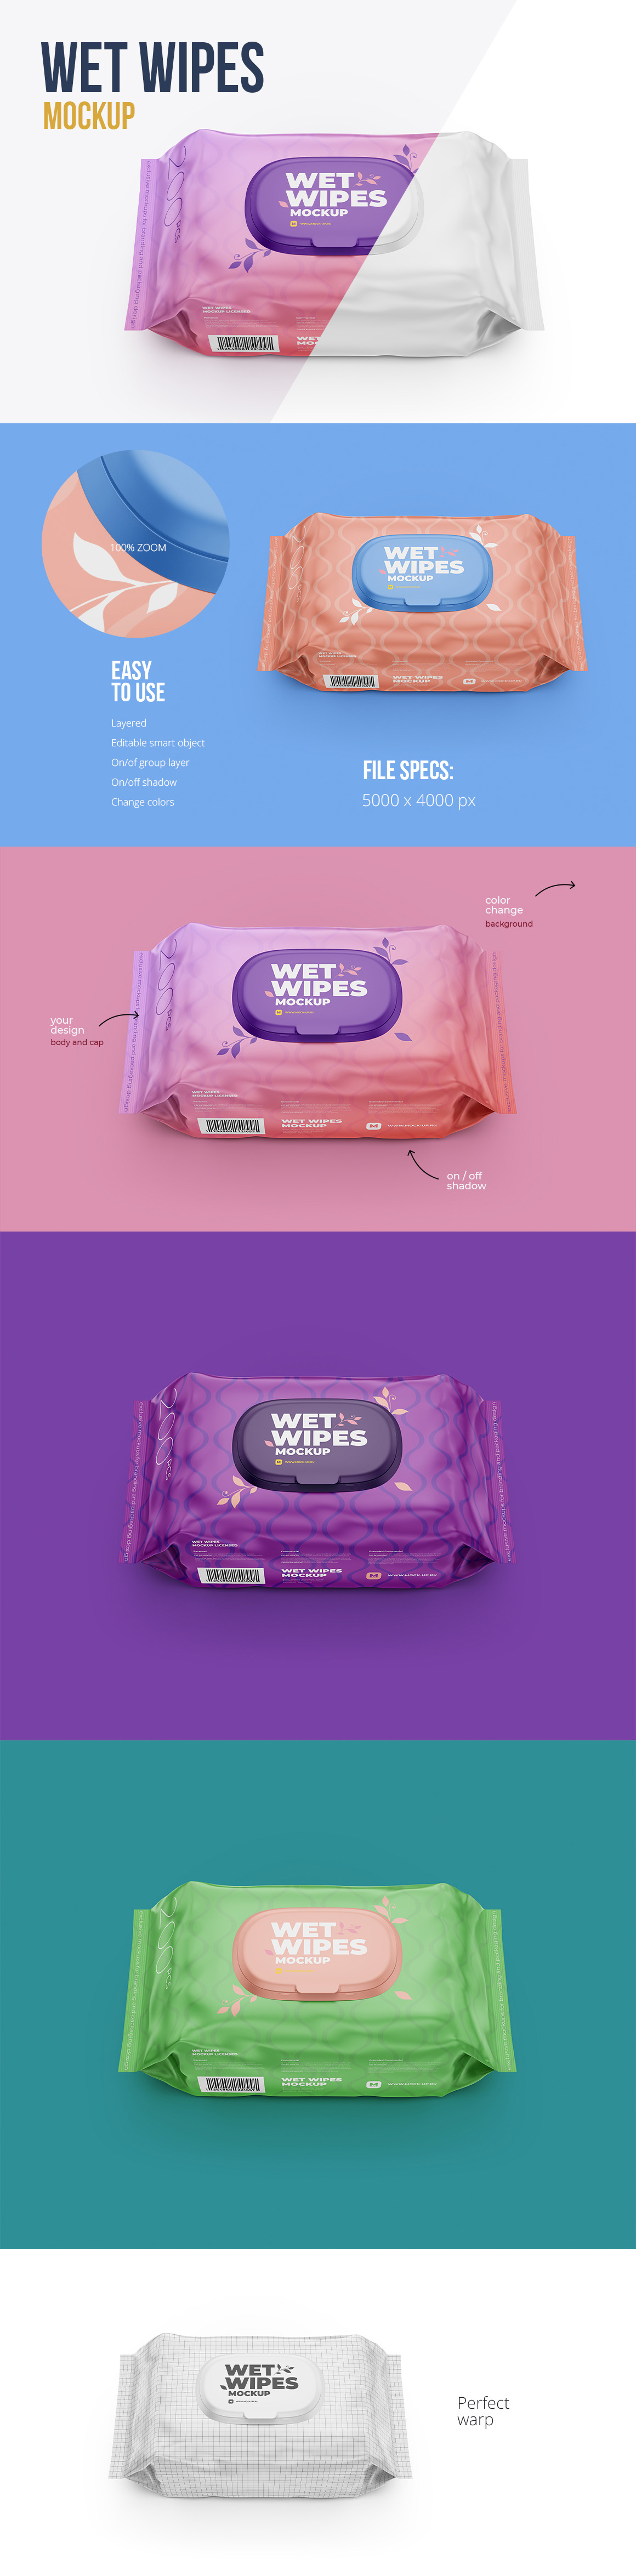 Wet Wipes Mockup, Large package